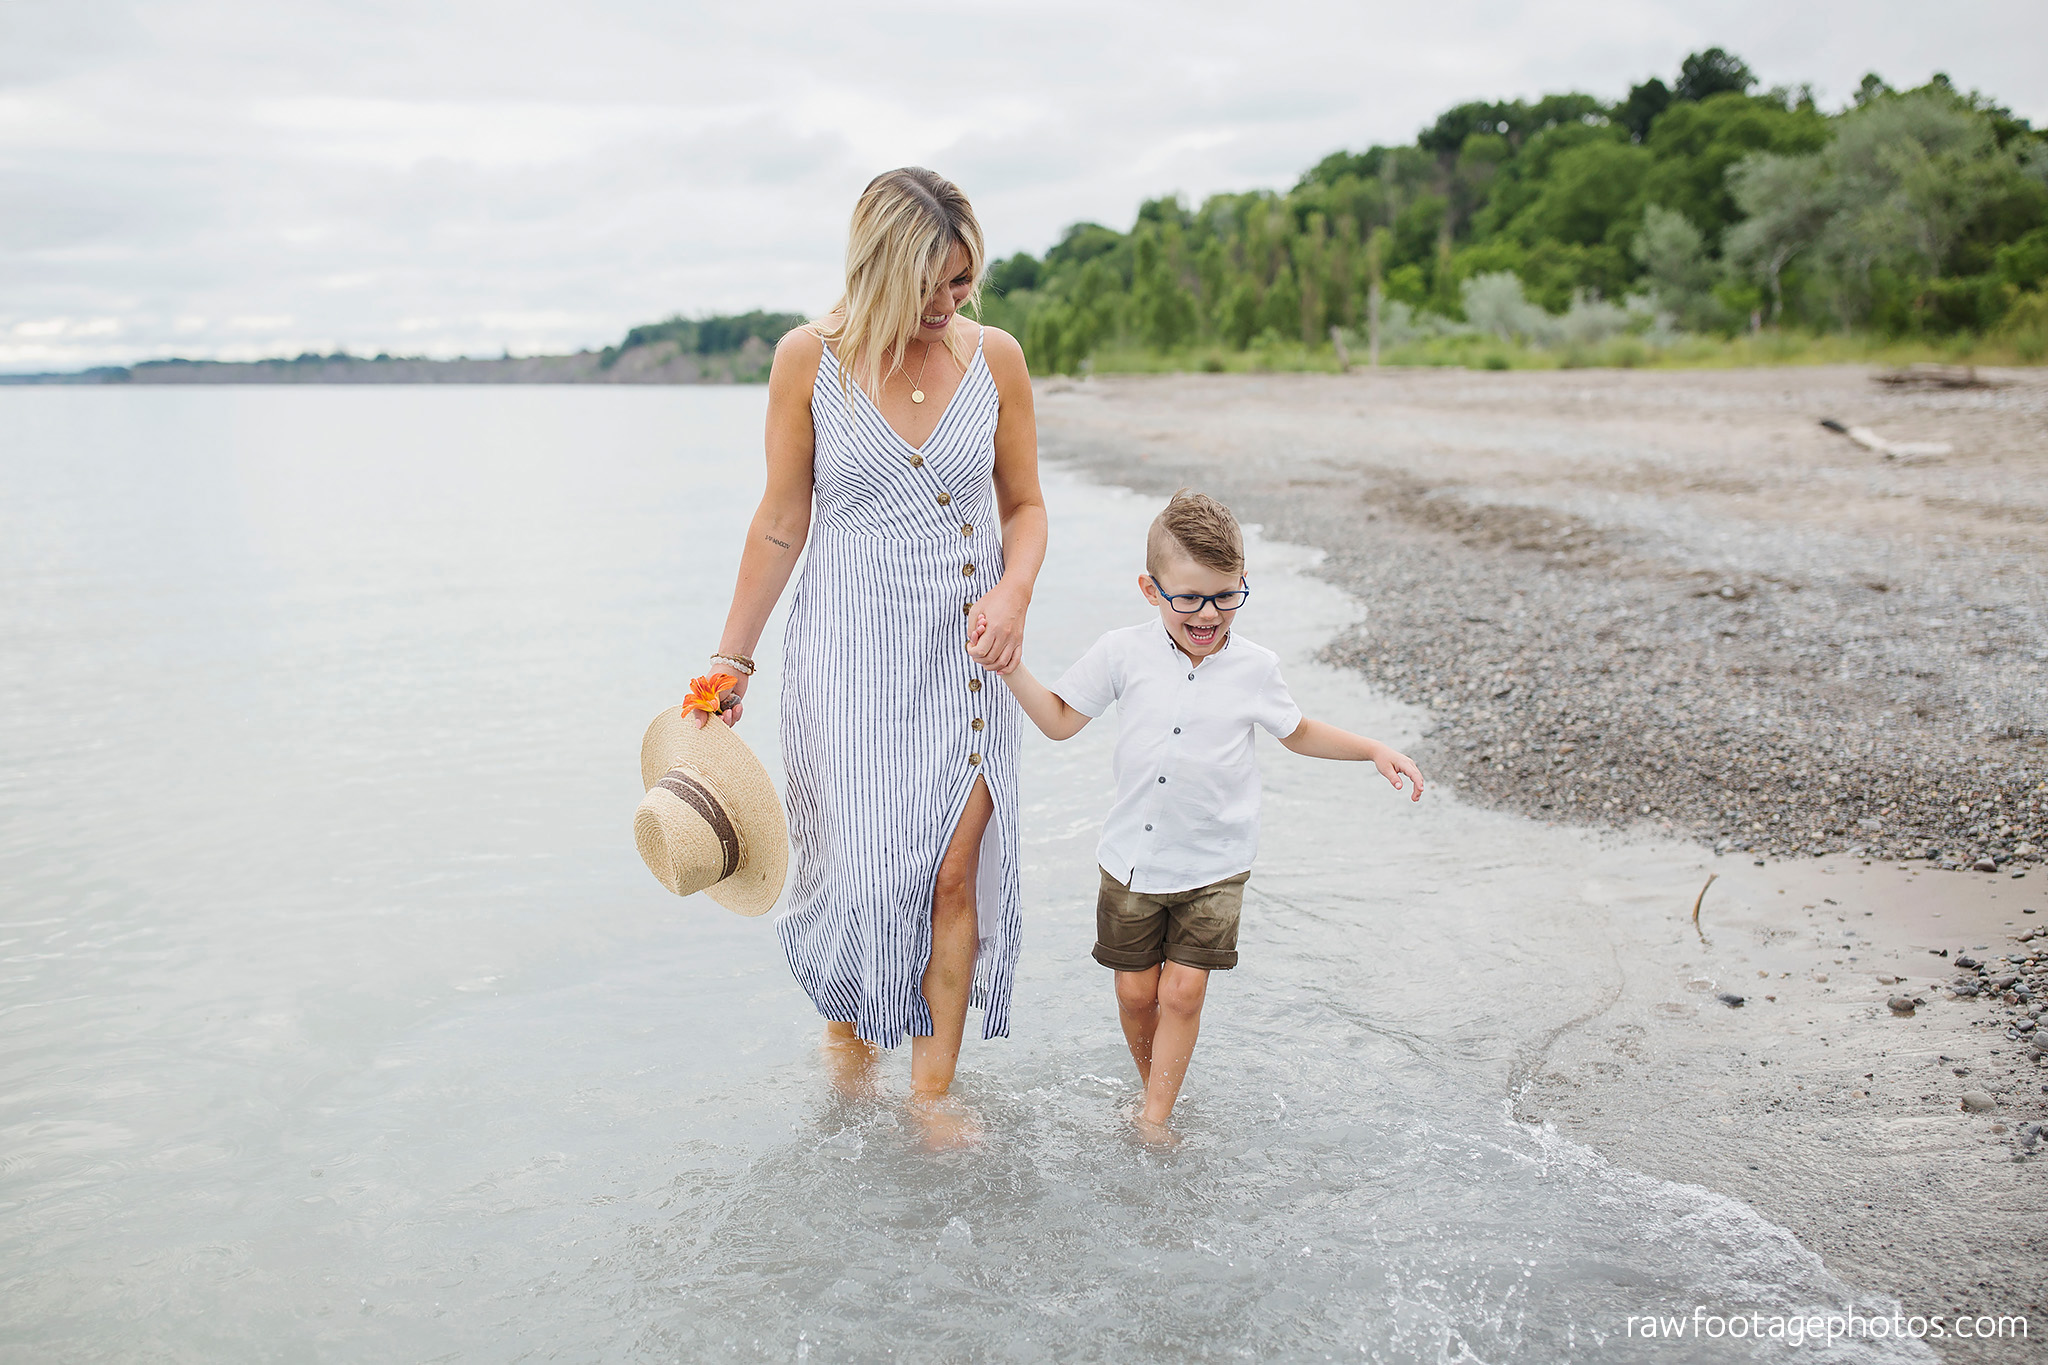 london_ontario_family_photographer-beach_minis-port_stanley_beach-raw_footage_photography066.jpg